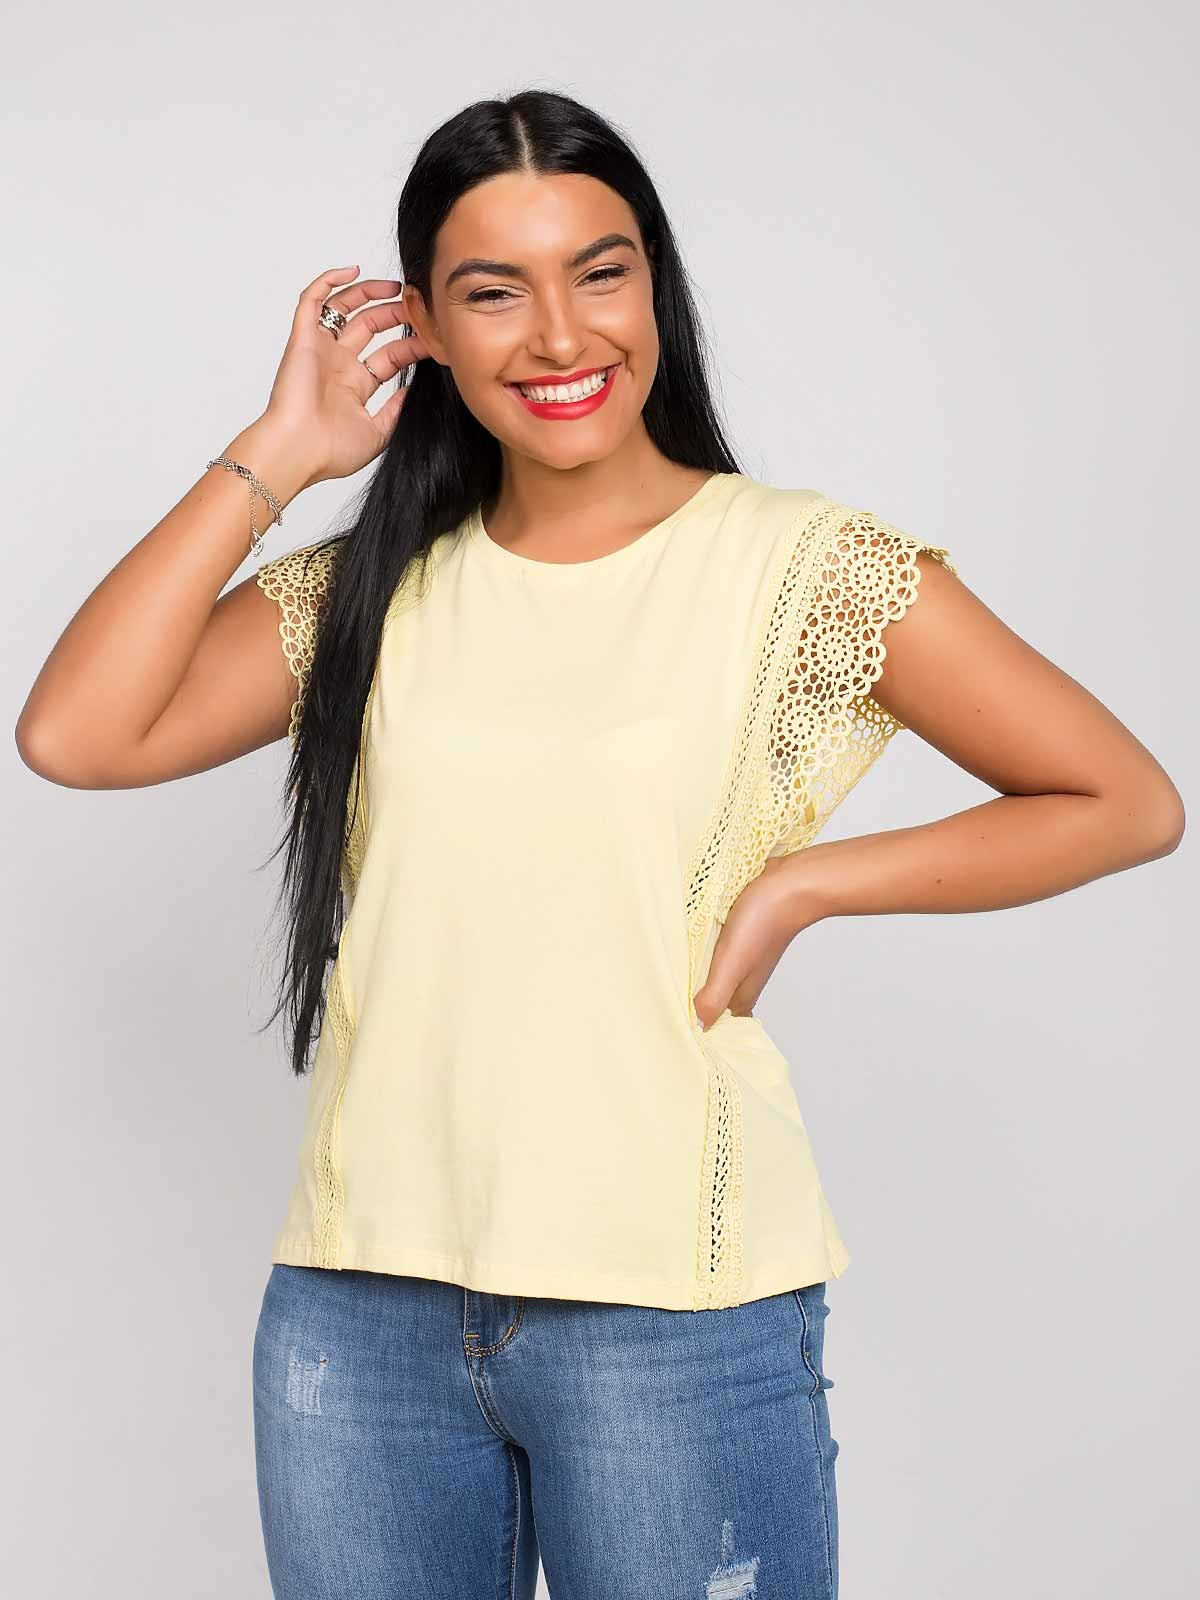 Top mangas crochet